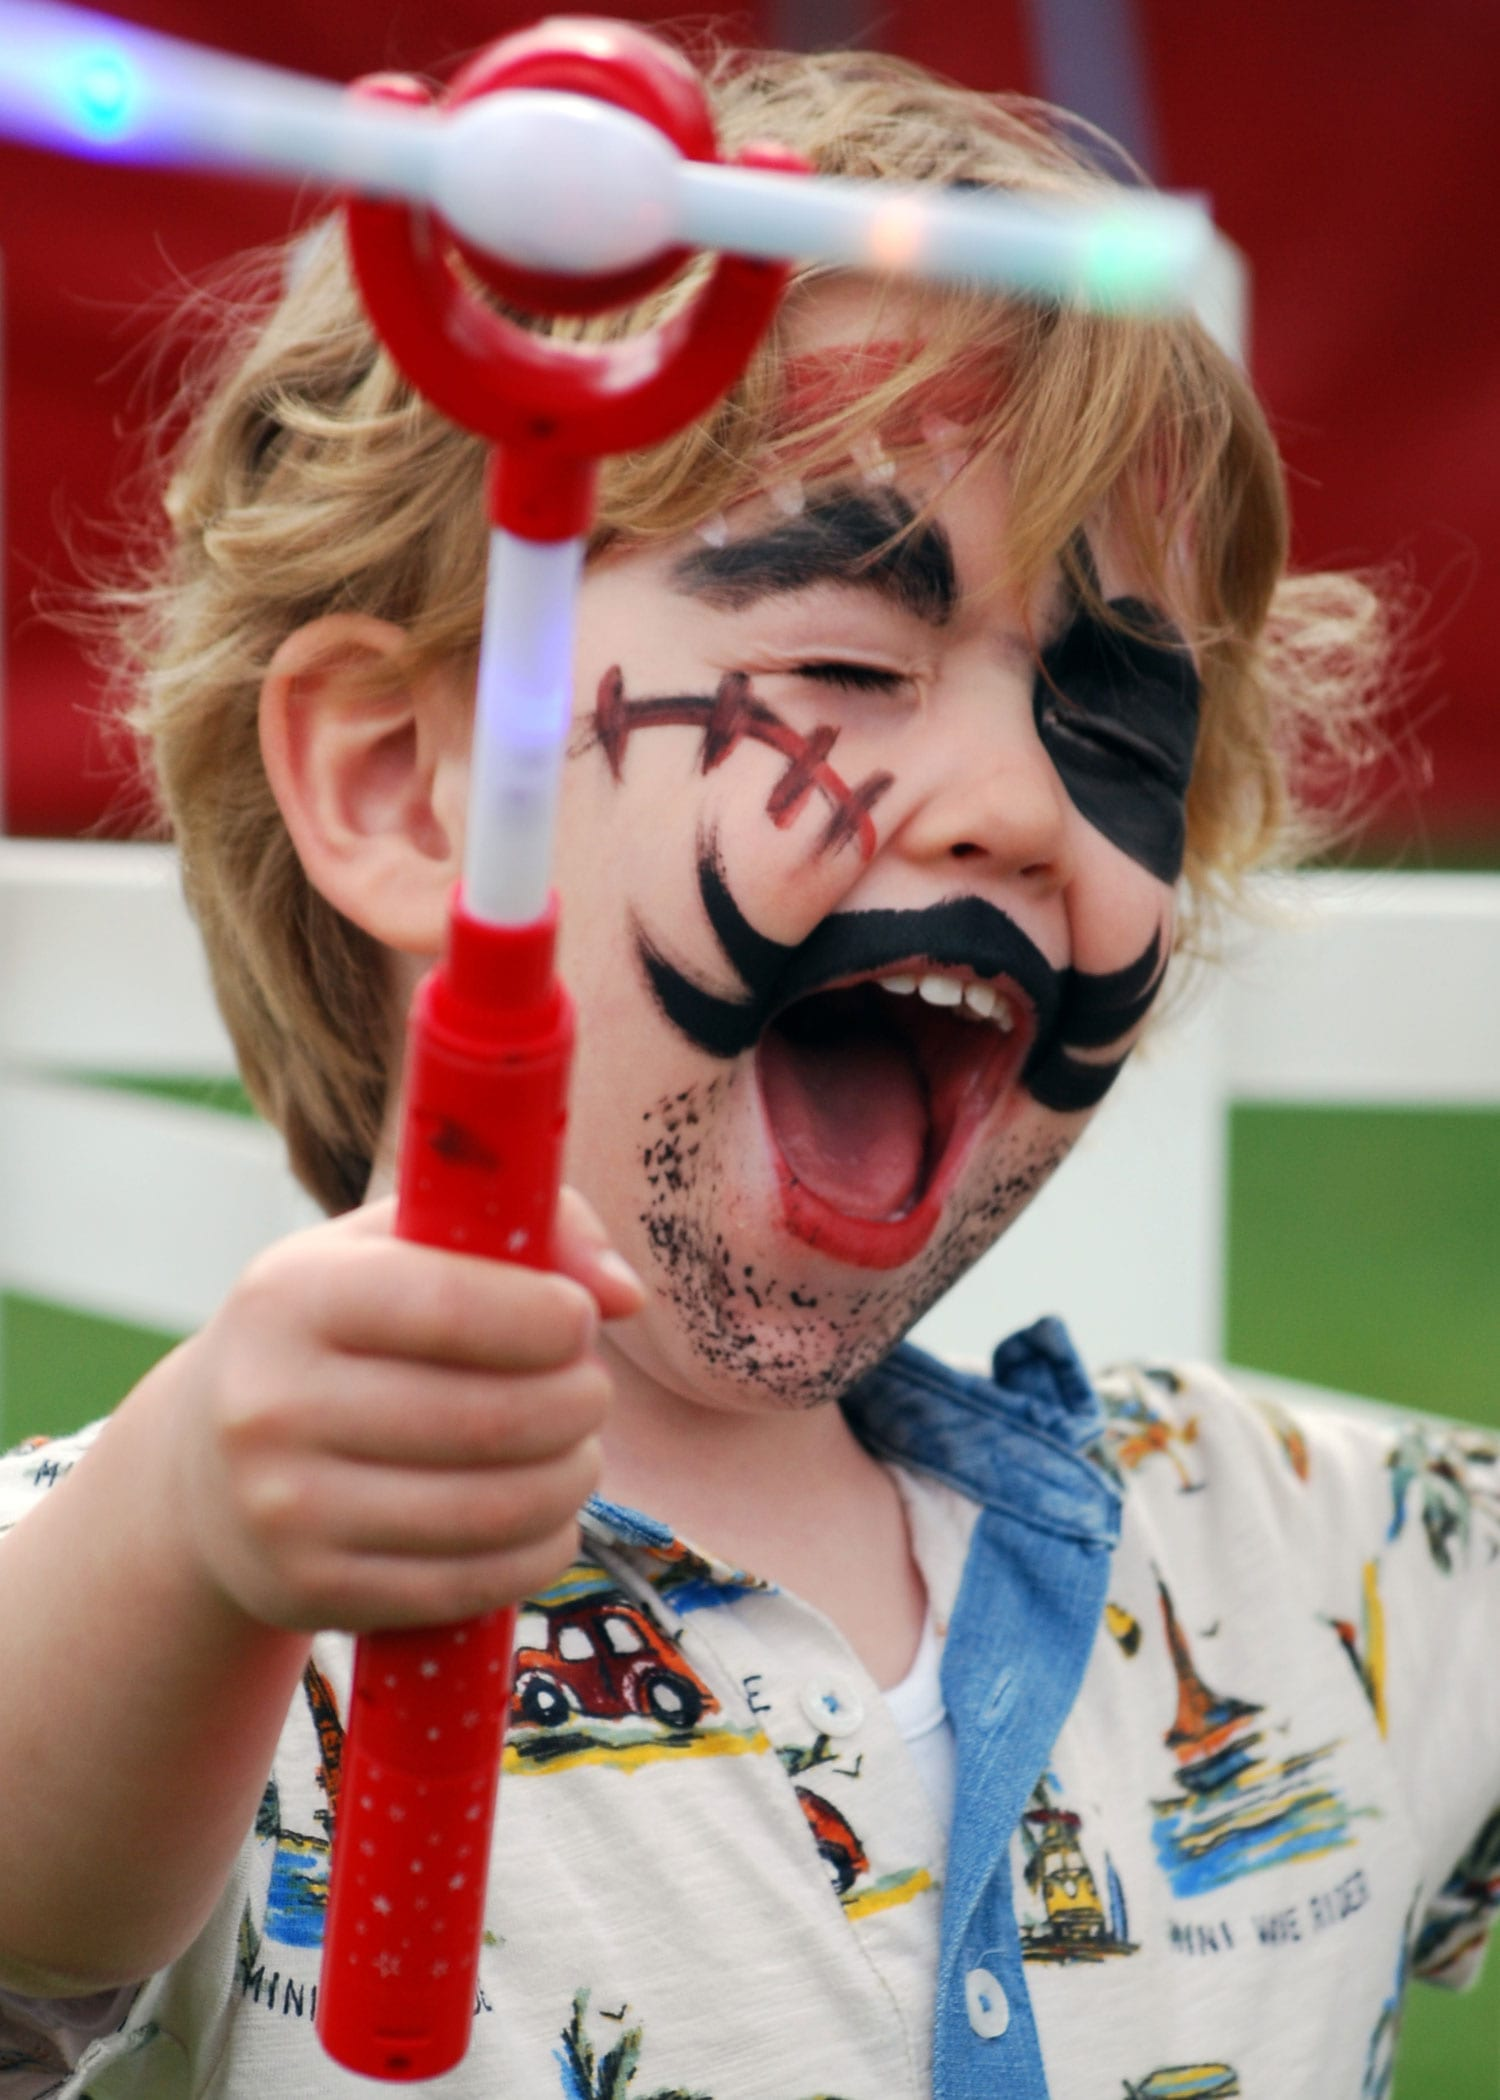 02-Face-painted-pirate-2